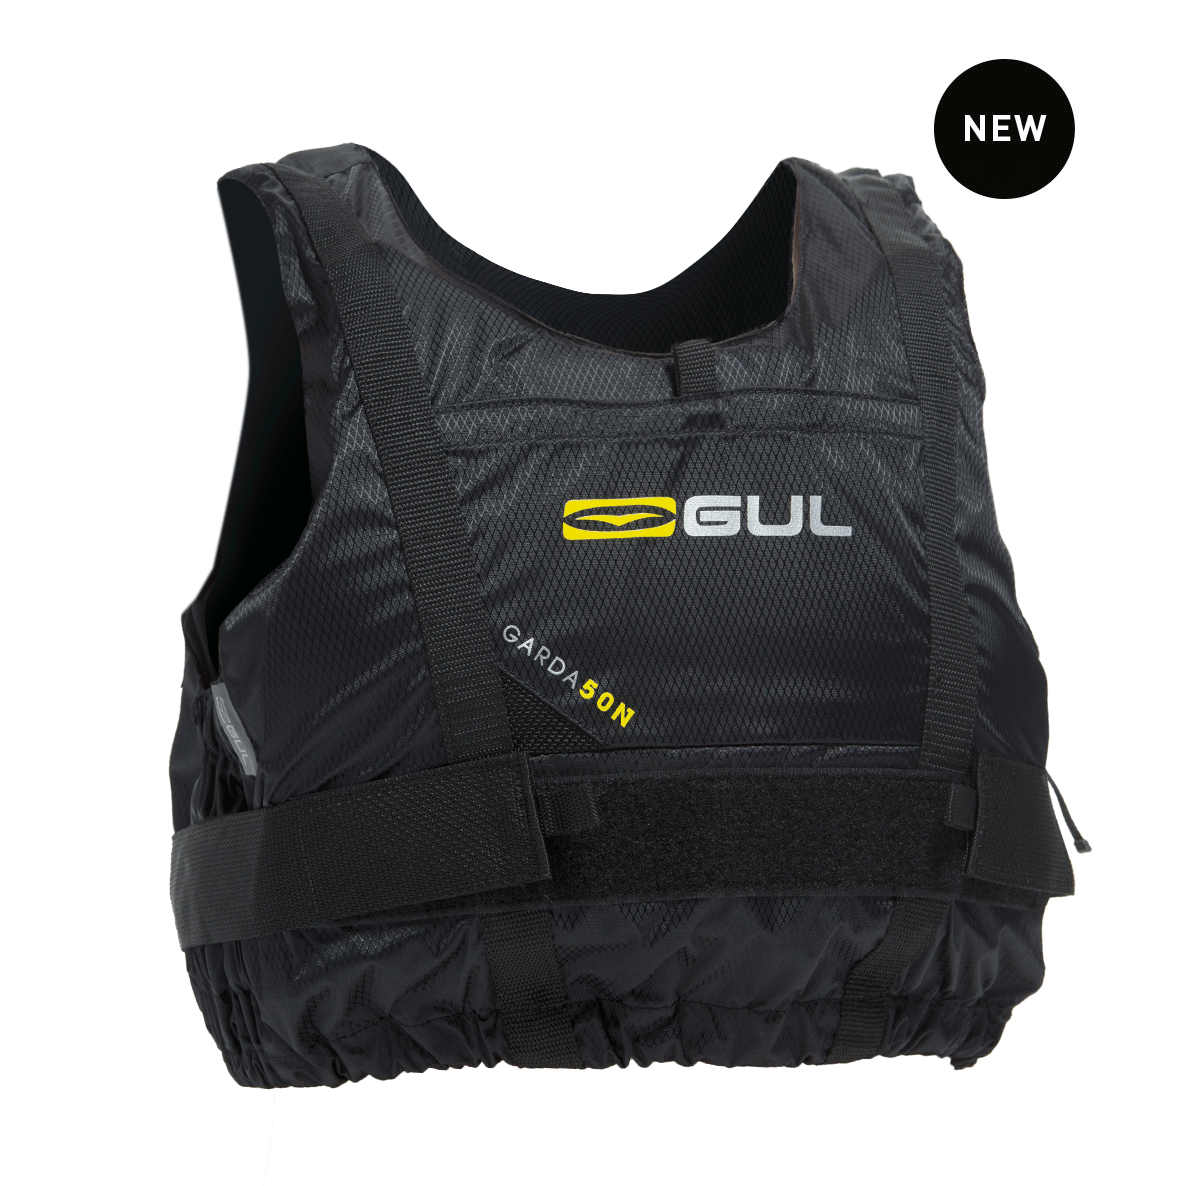 Gul Garda 50n Buoyancy Aid    Gm0002-A9